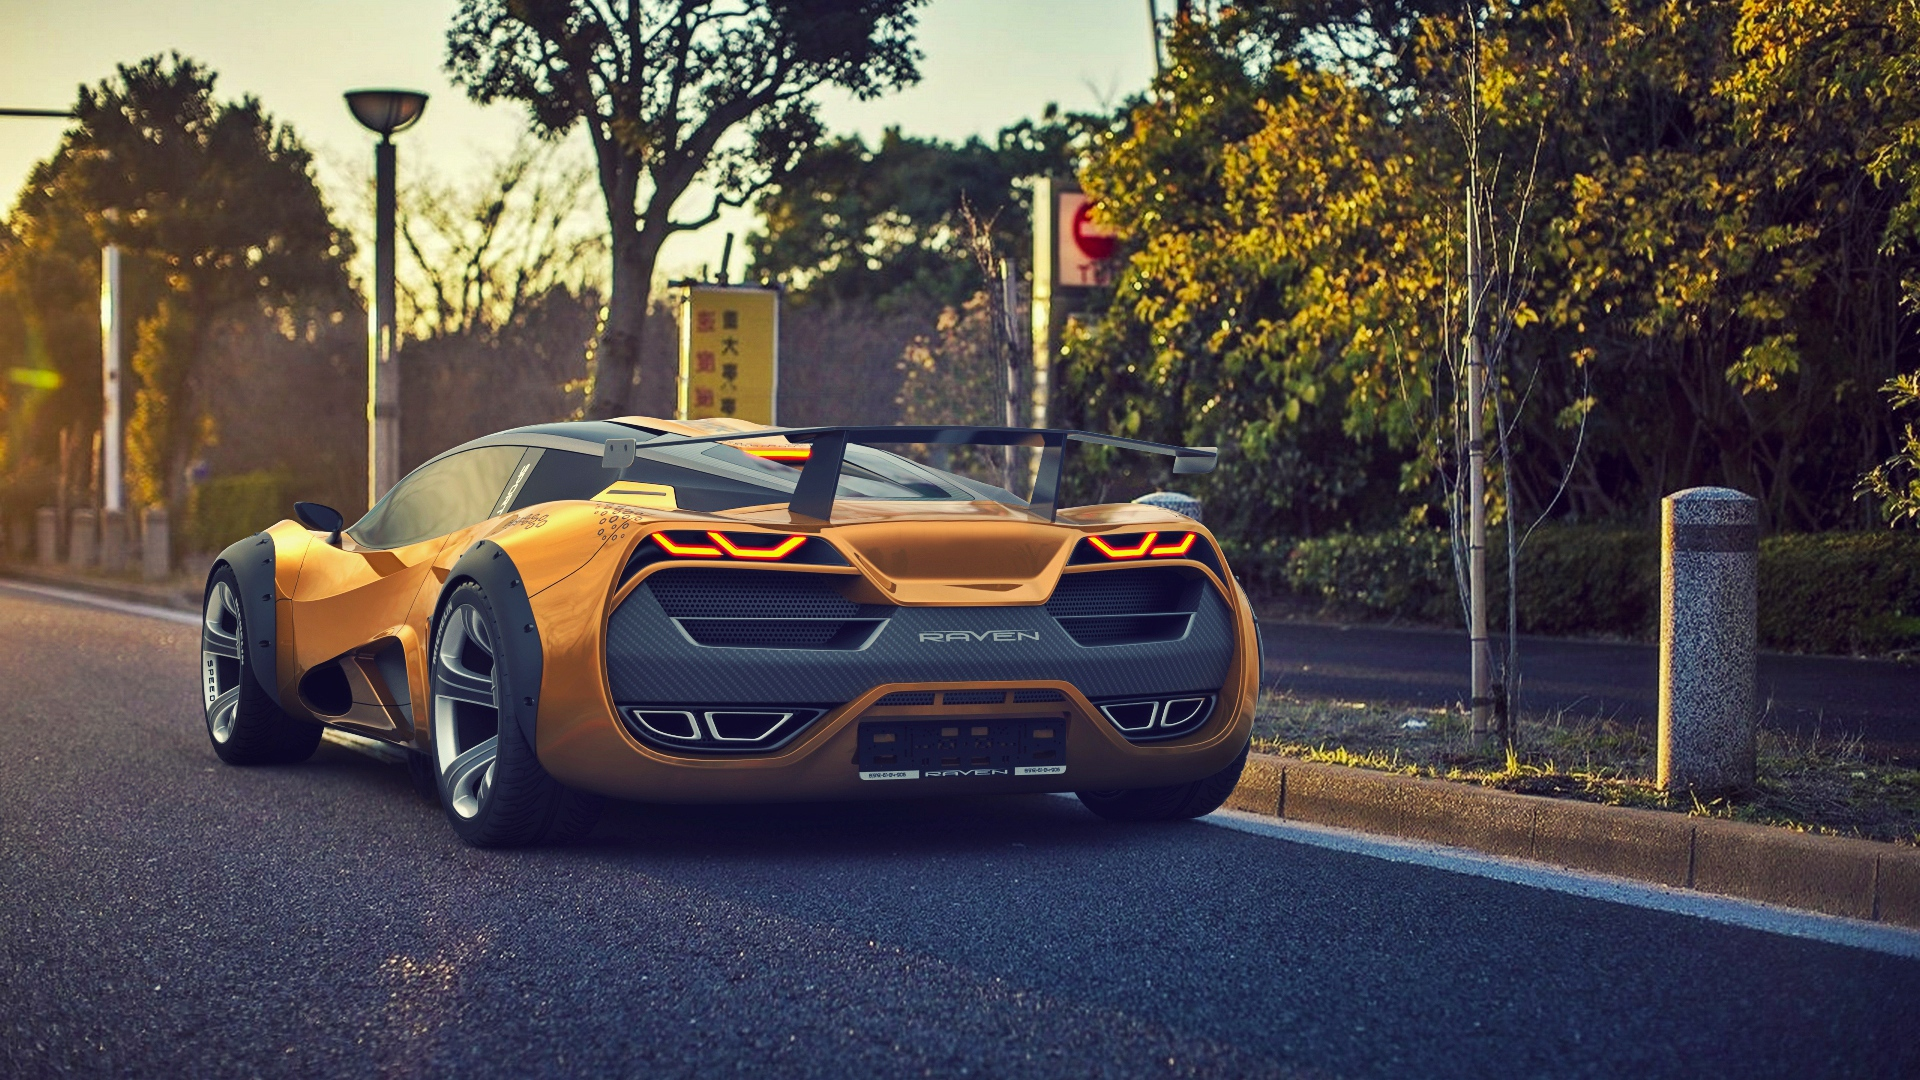 Hd Sport Car Wallpaper 106 images in Collection Page 1 1920x1080